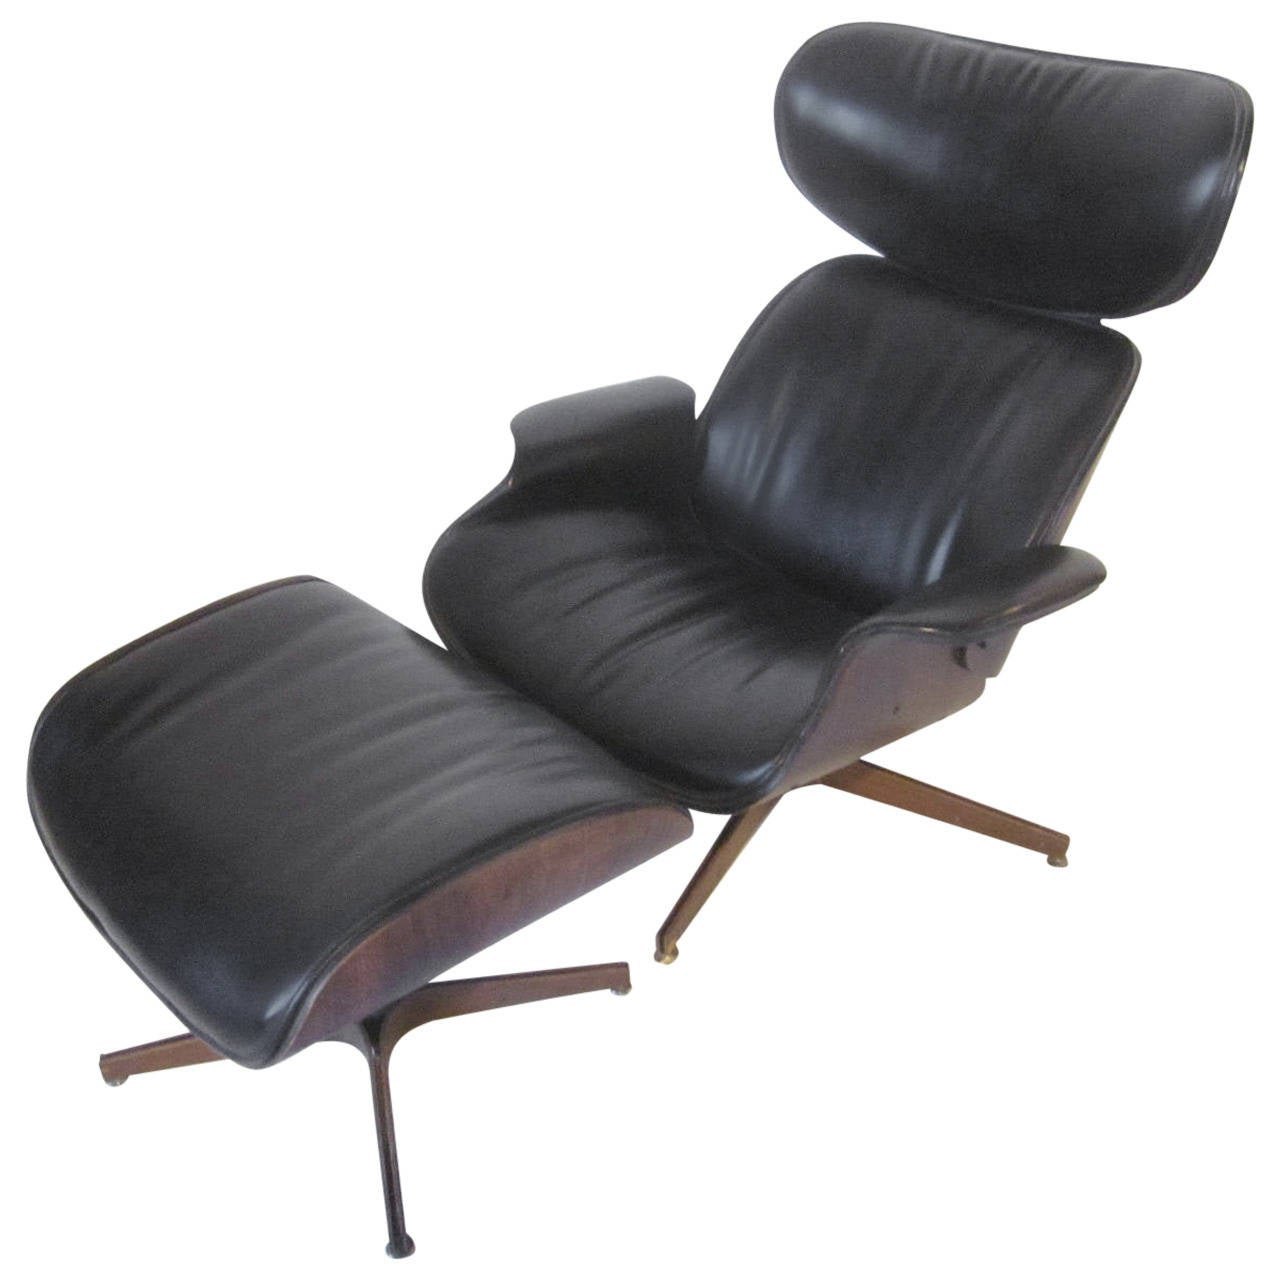 Plycraft Lounge Chair by Mulhauser at 1stdibs